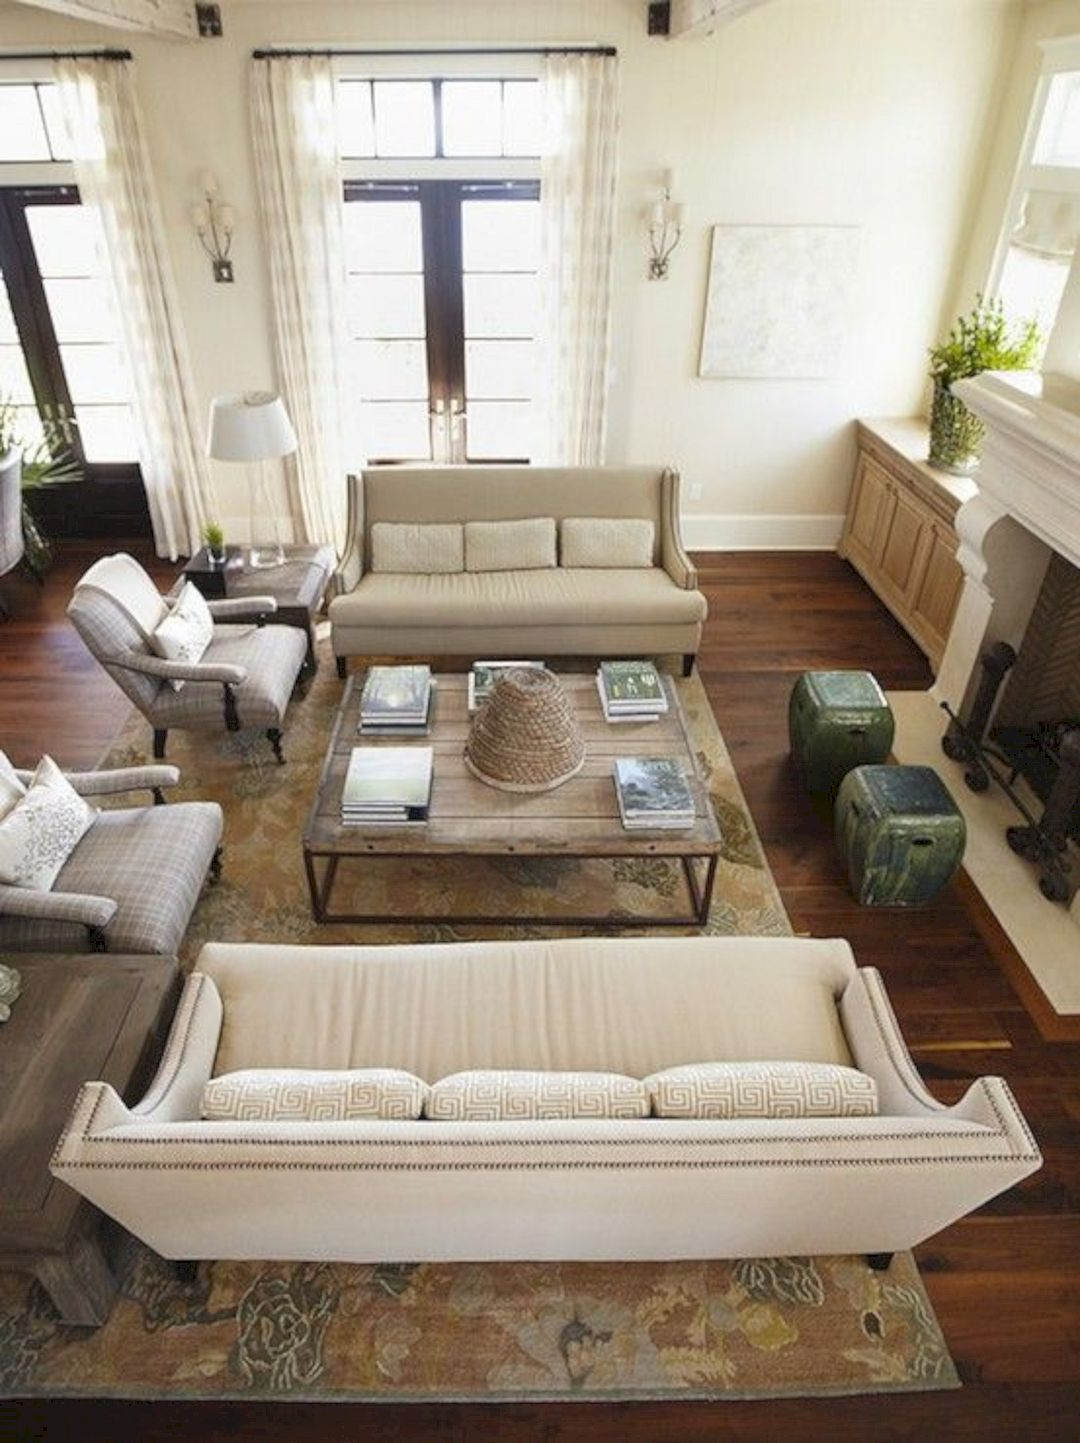 15 Amazing Furniture Layout Ideas To Arrange Your Family Room Https Www